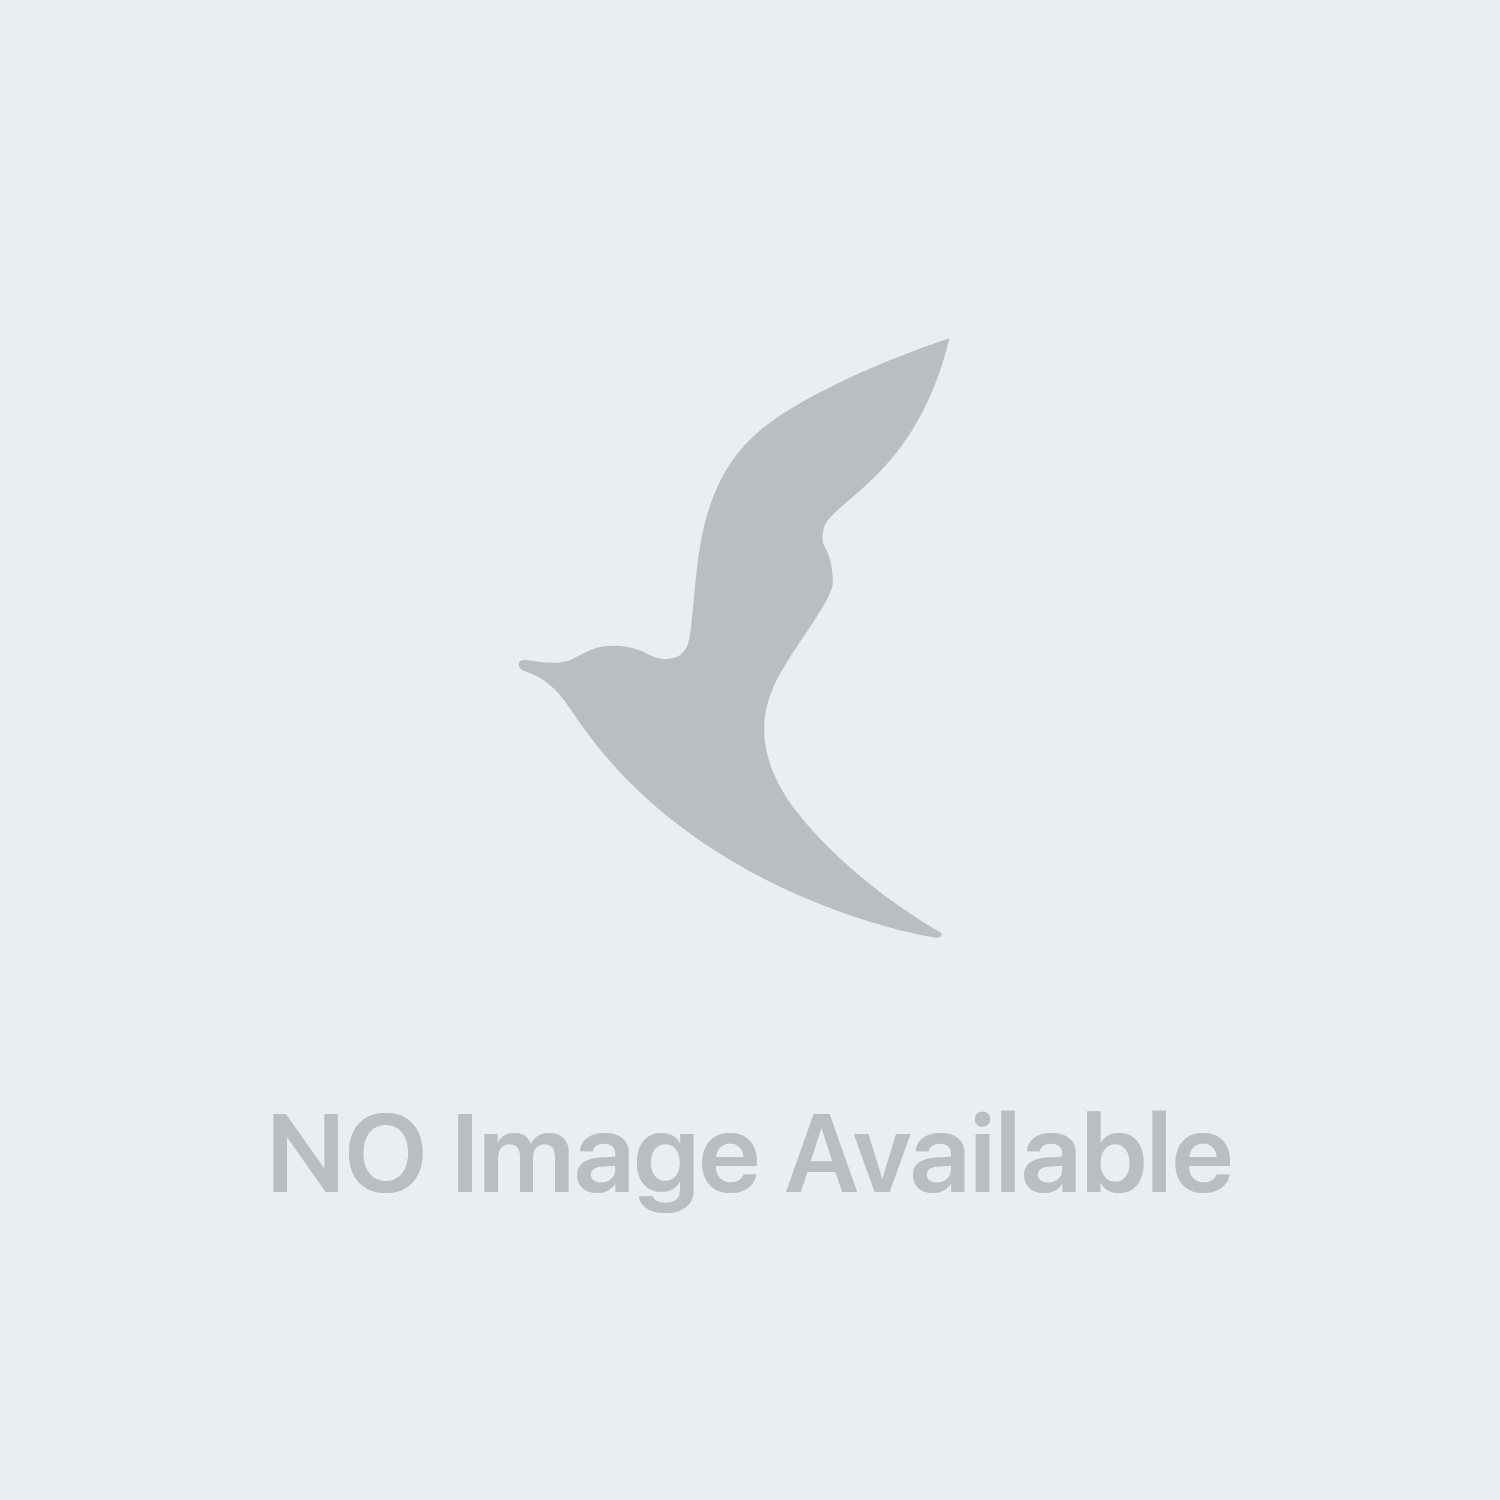 Pic Siringa Insulina 0,3ml 31g 8mm 30 Pezzi